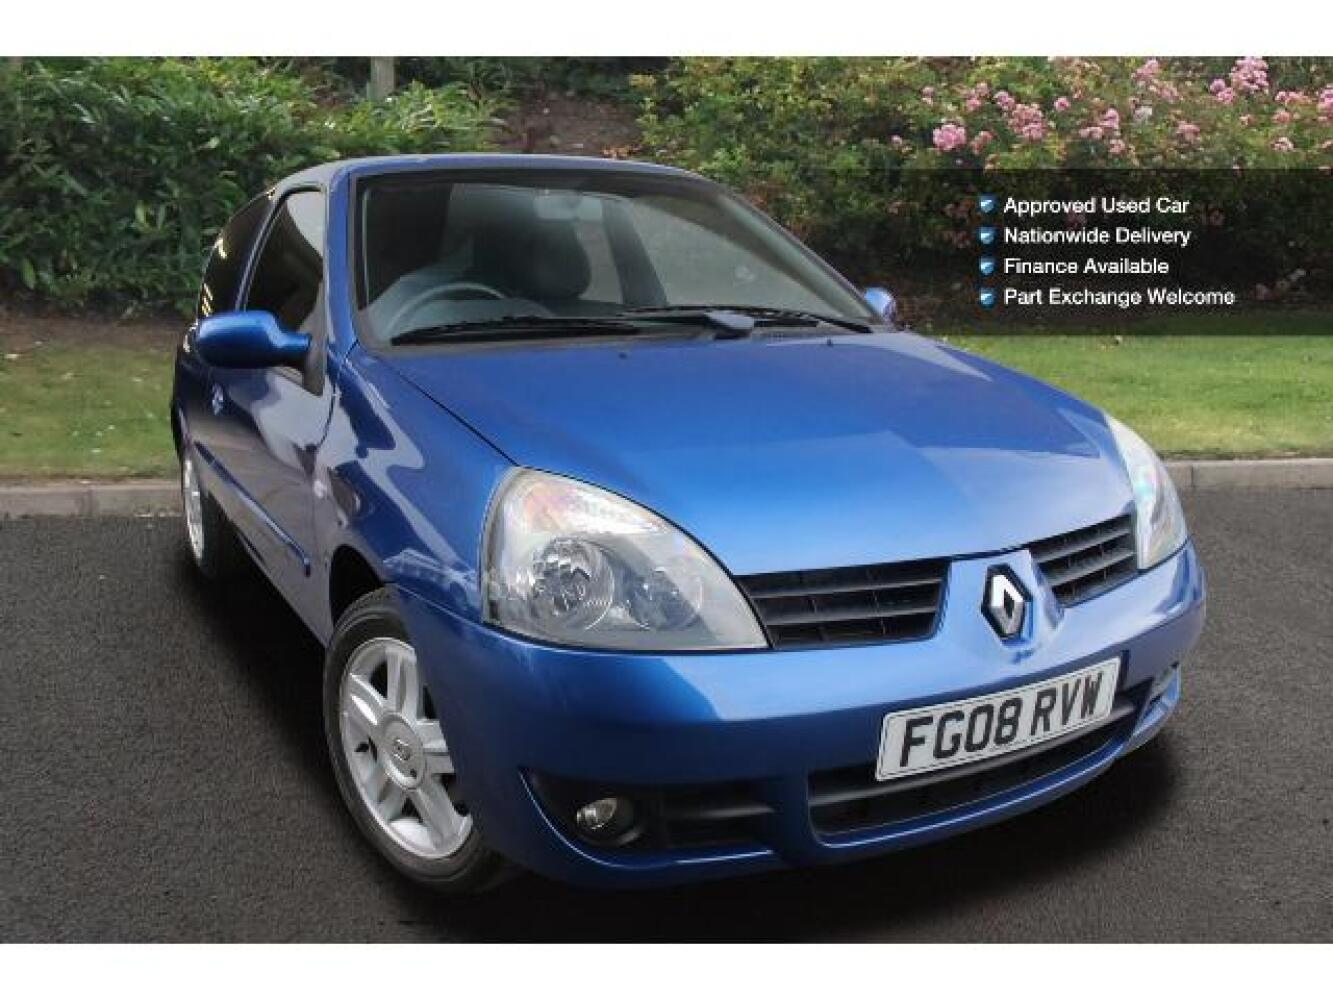 used renault clio 1 2 16v campus sport i music 2007 3dr petrol hatchback for sale vertu toyota. Black Bedroom Furniture Sets. Home Design Ideas